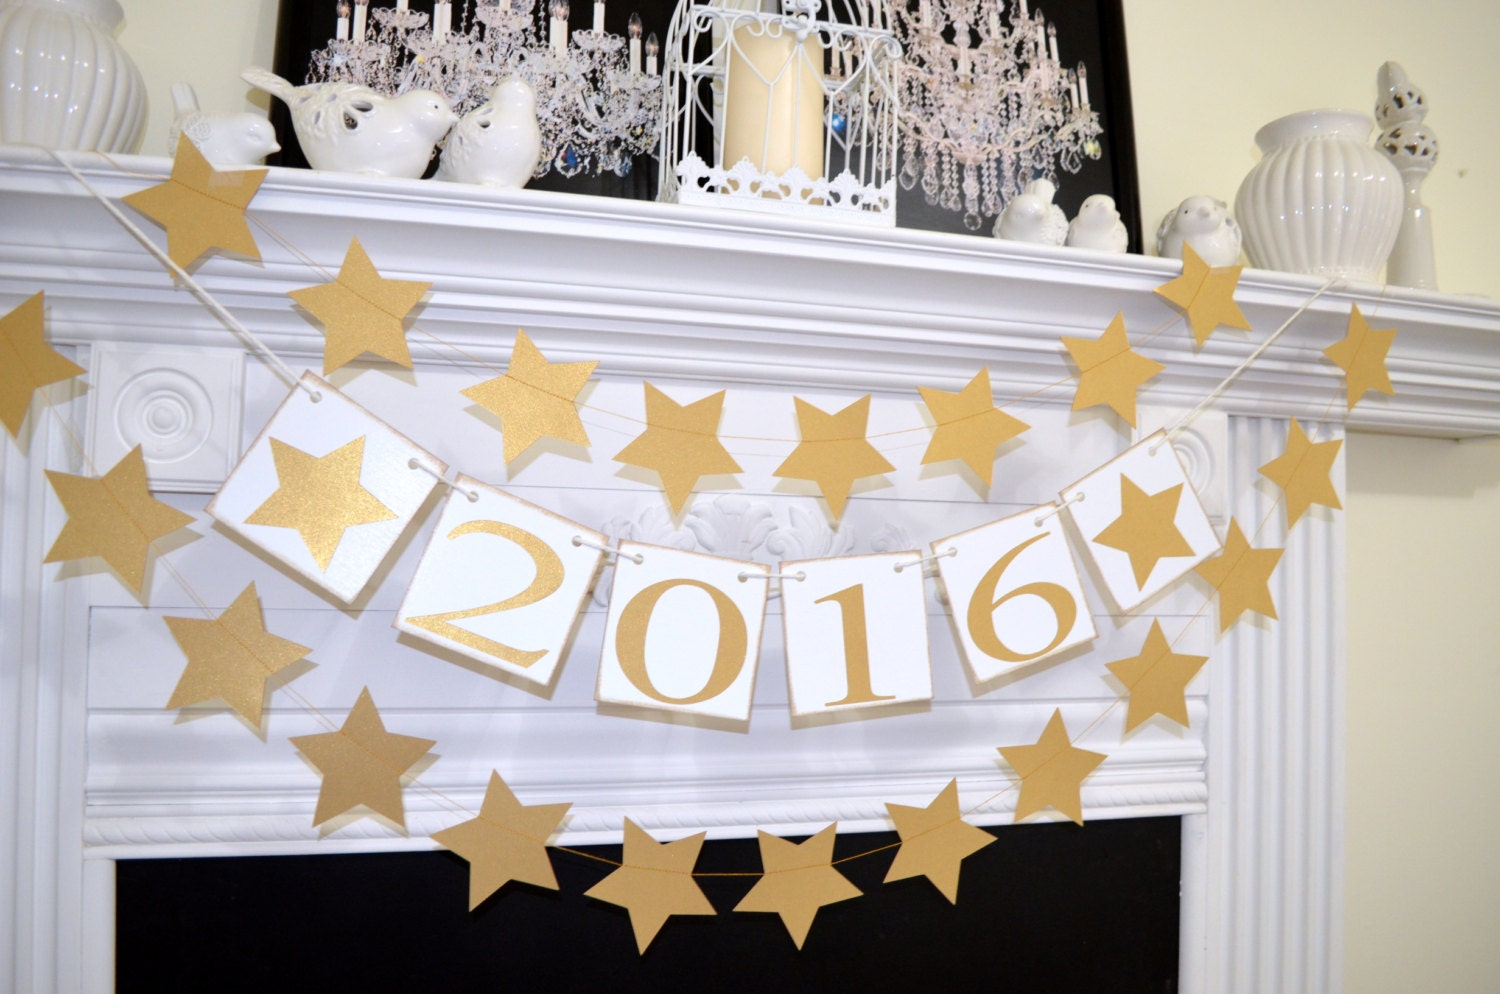 welcome home banner military banner home from war 2017 graduation decoration class of 2017 bunting cake table 2017 decorations black gold